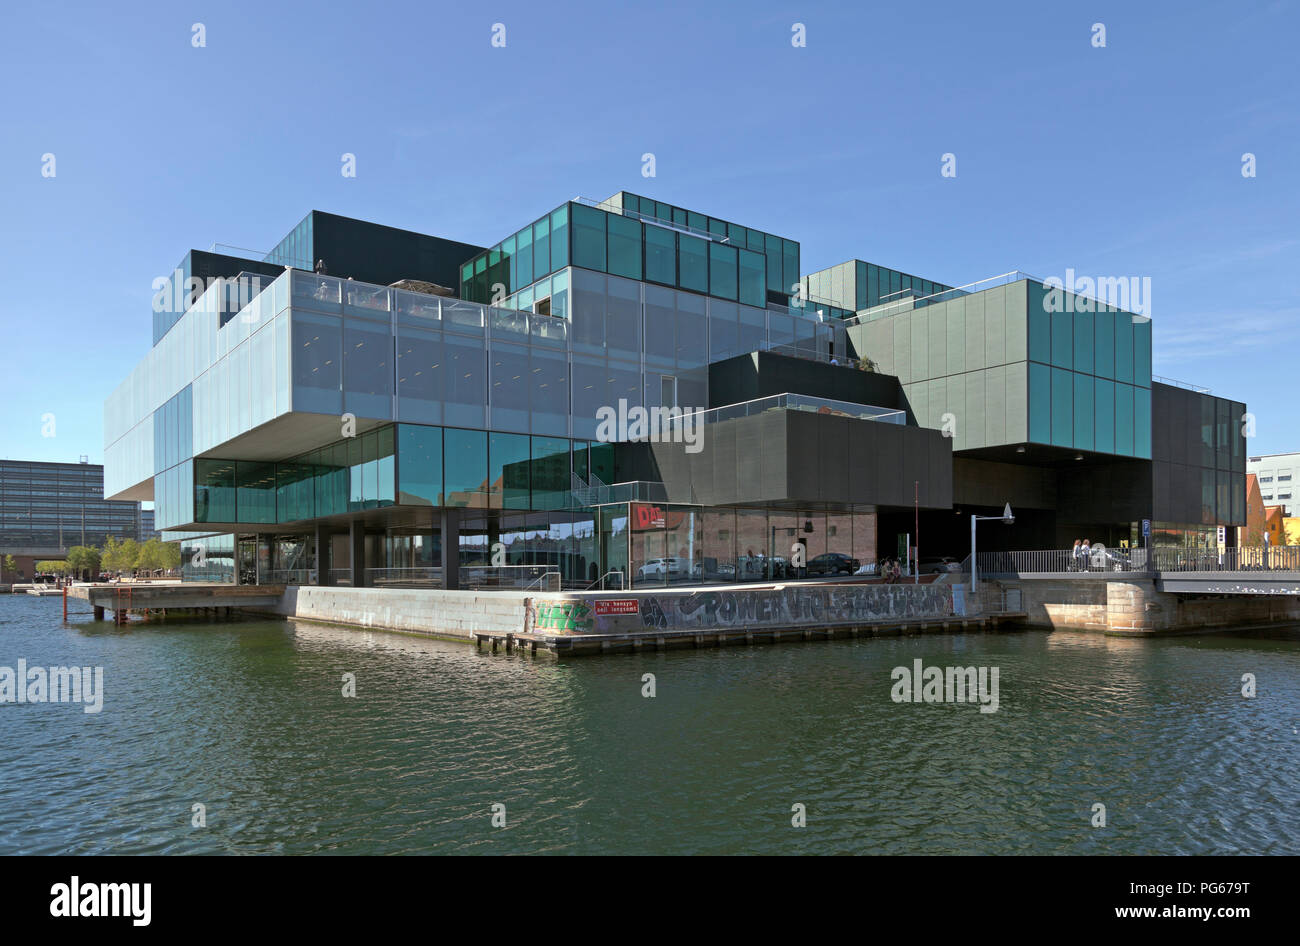 The BLOX building, a new prestige building for architecture and design etc.at the waterfront on Christians Brygge in Copenhagen at Frederiksholm Canal Stock Photo